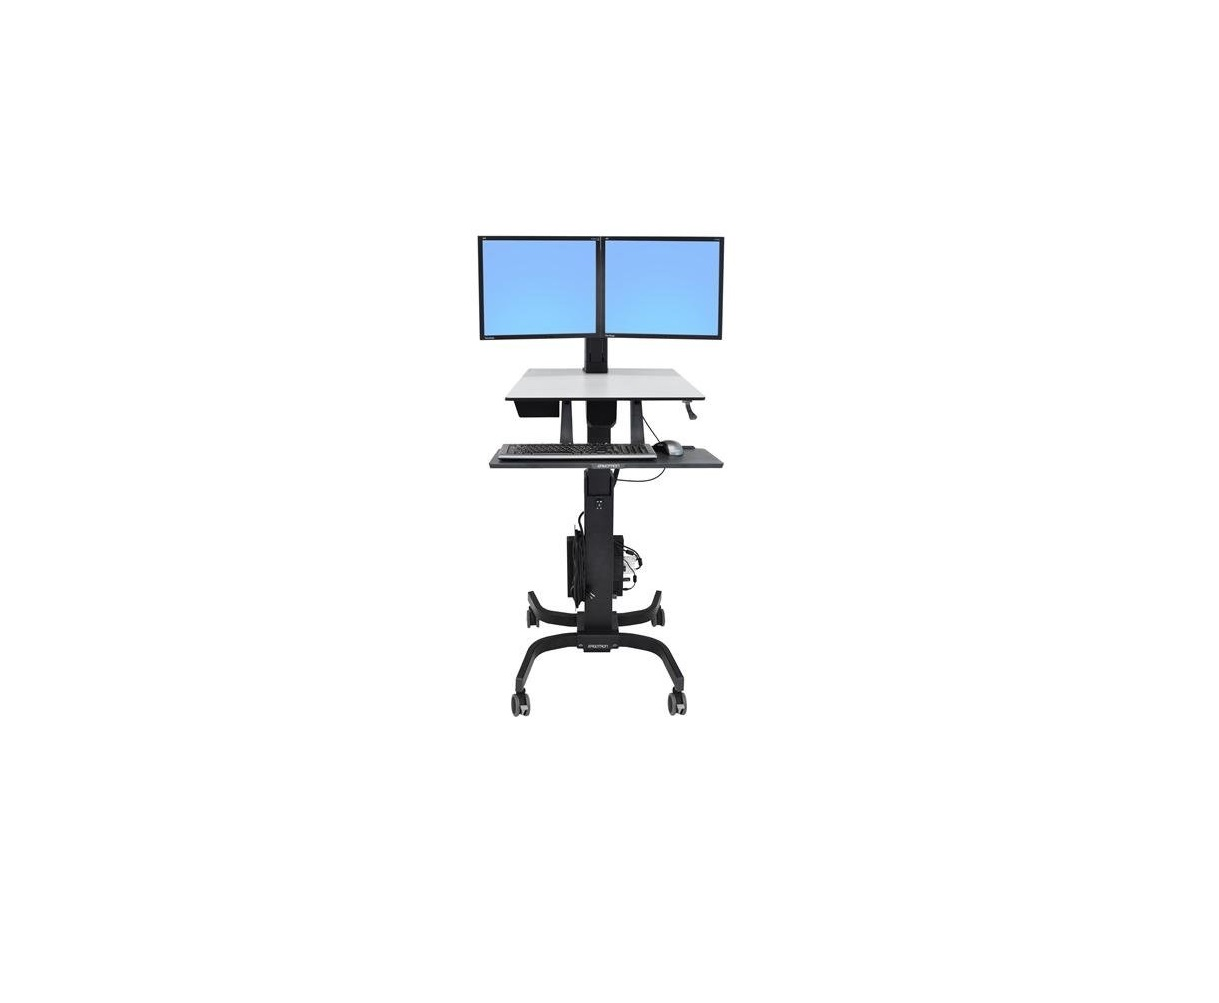 Ergotron WorkFit-C 24-215-085 Single Computer Stand Up To 24 Screen